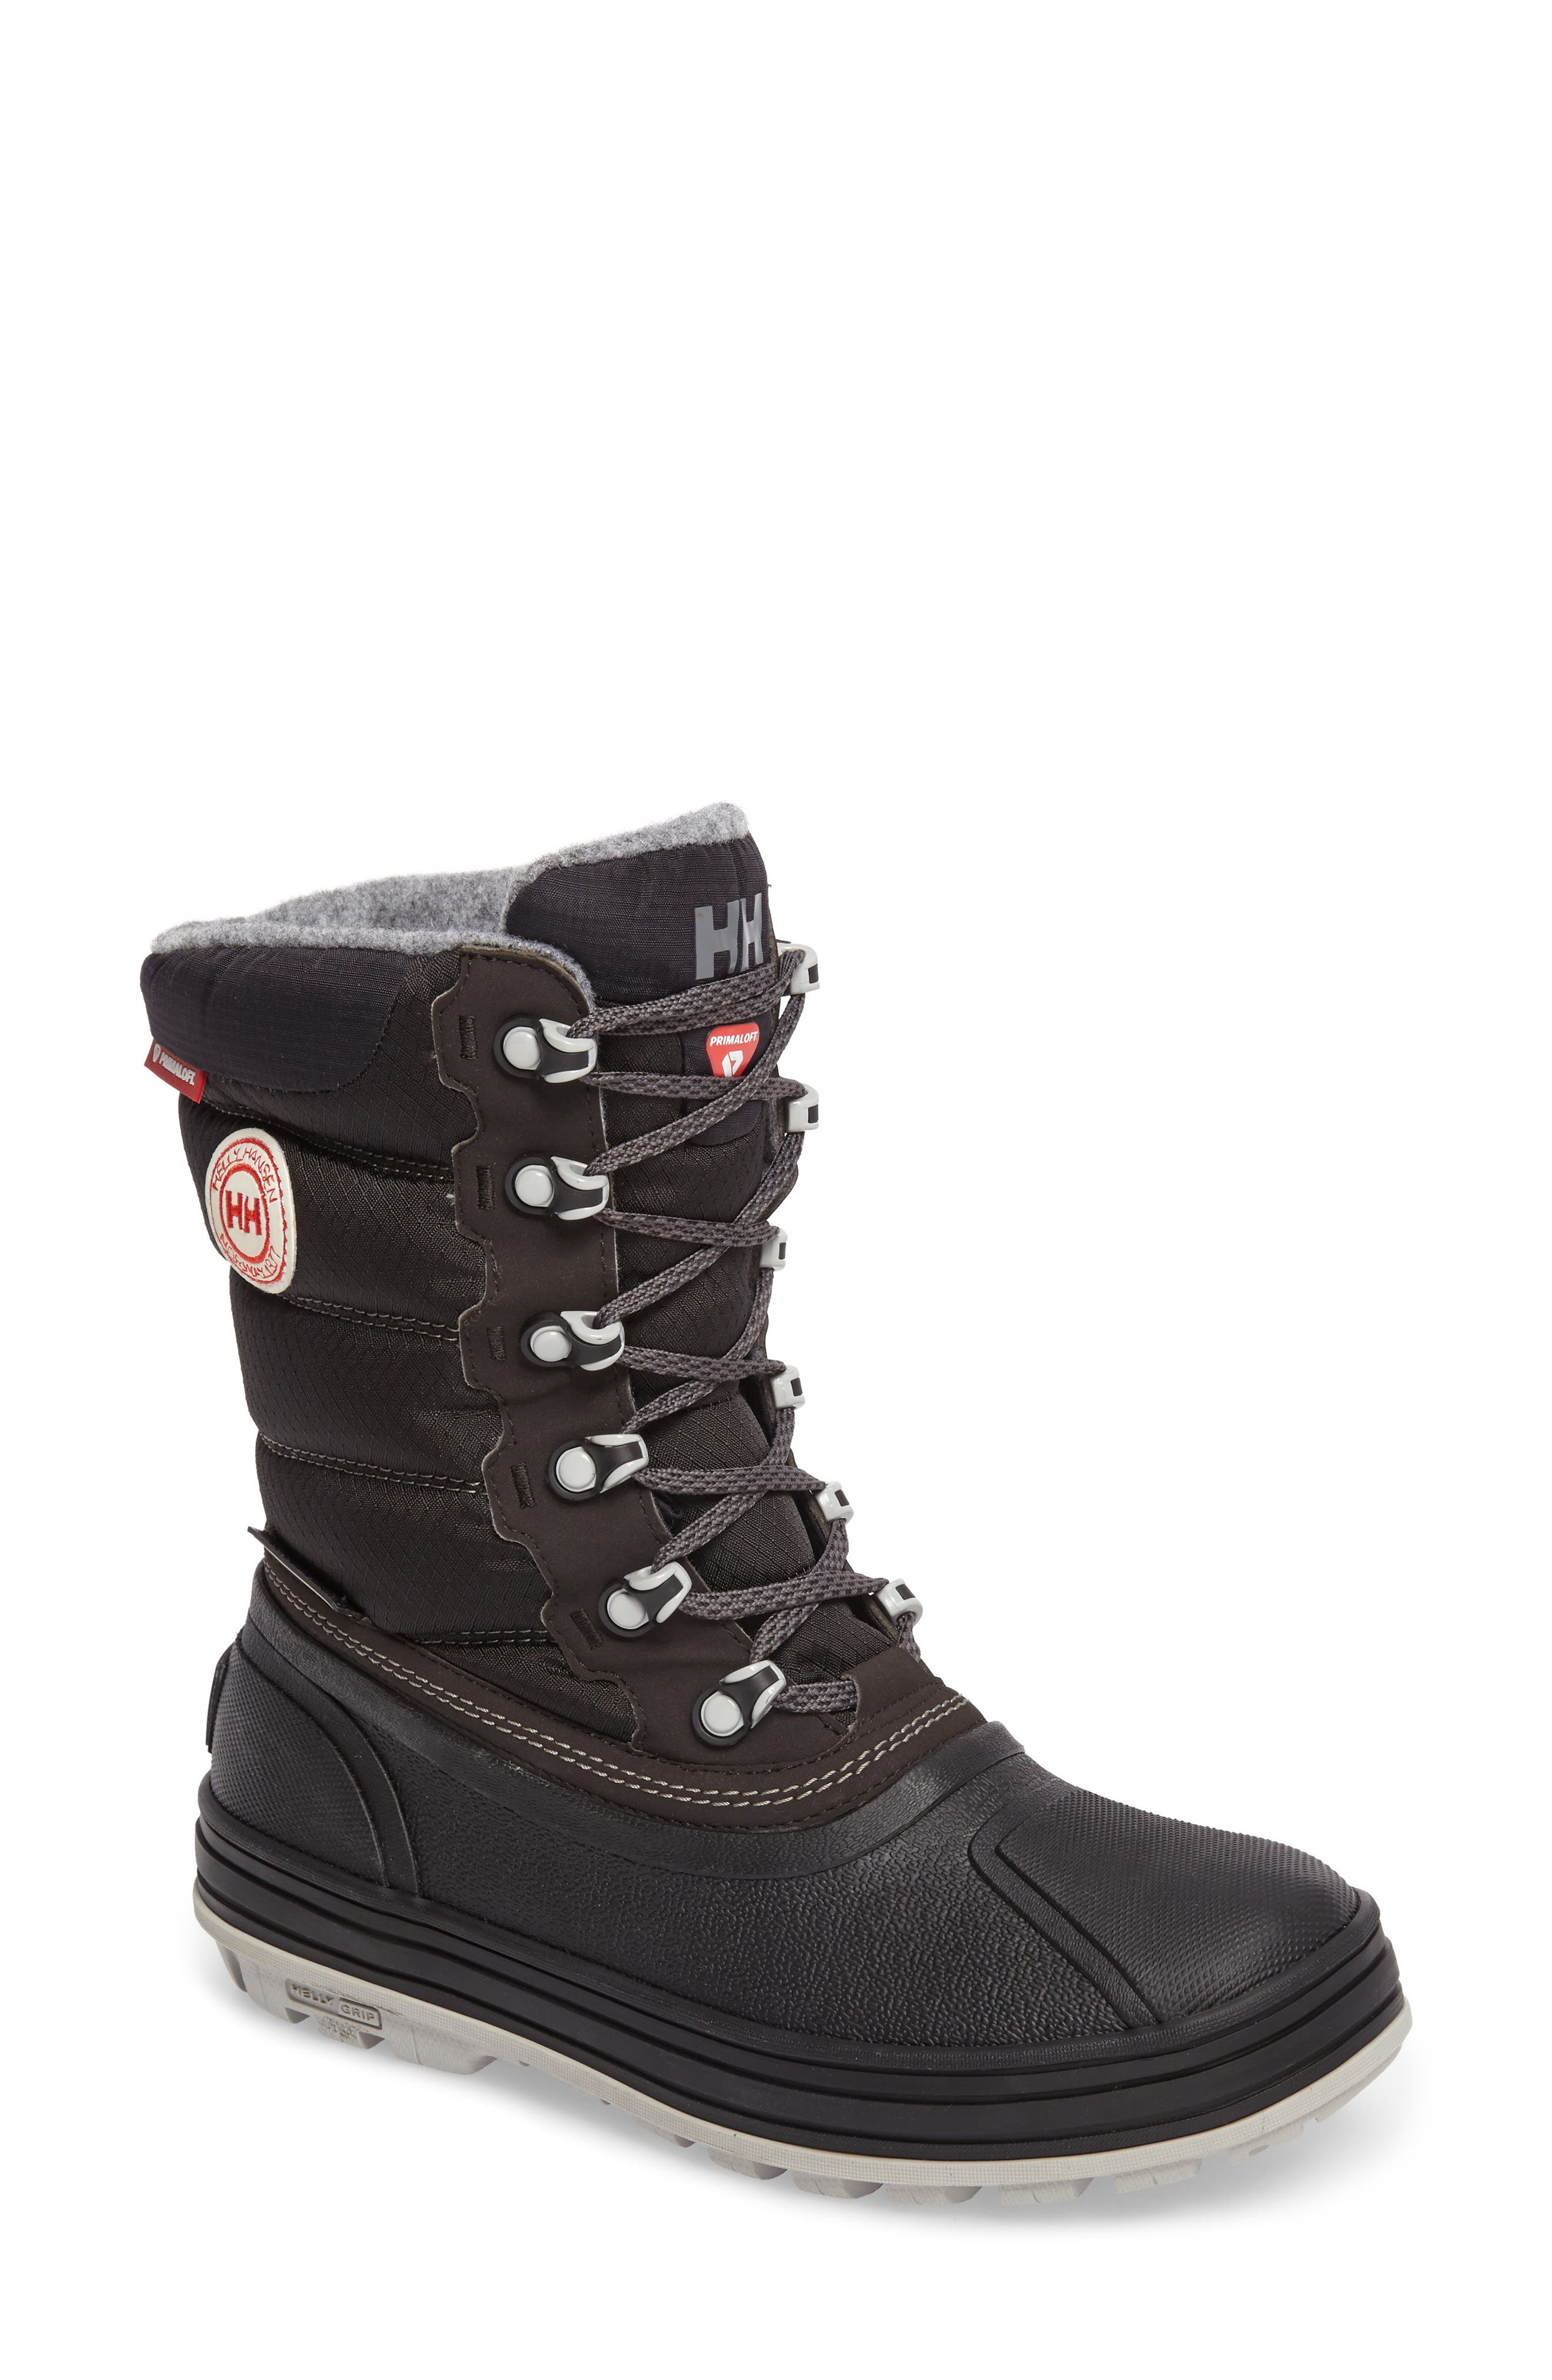 Tundra CWB Snow Boot,                             Main thumbnail 1, color,                             Jet Black